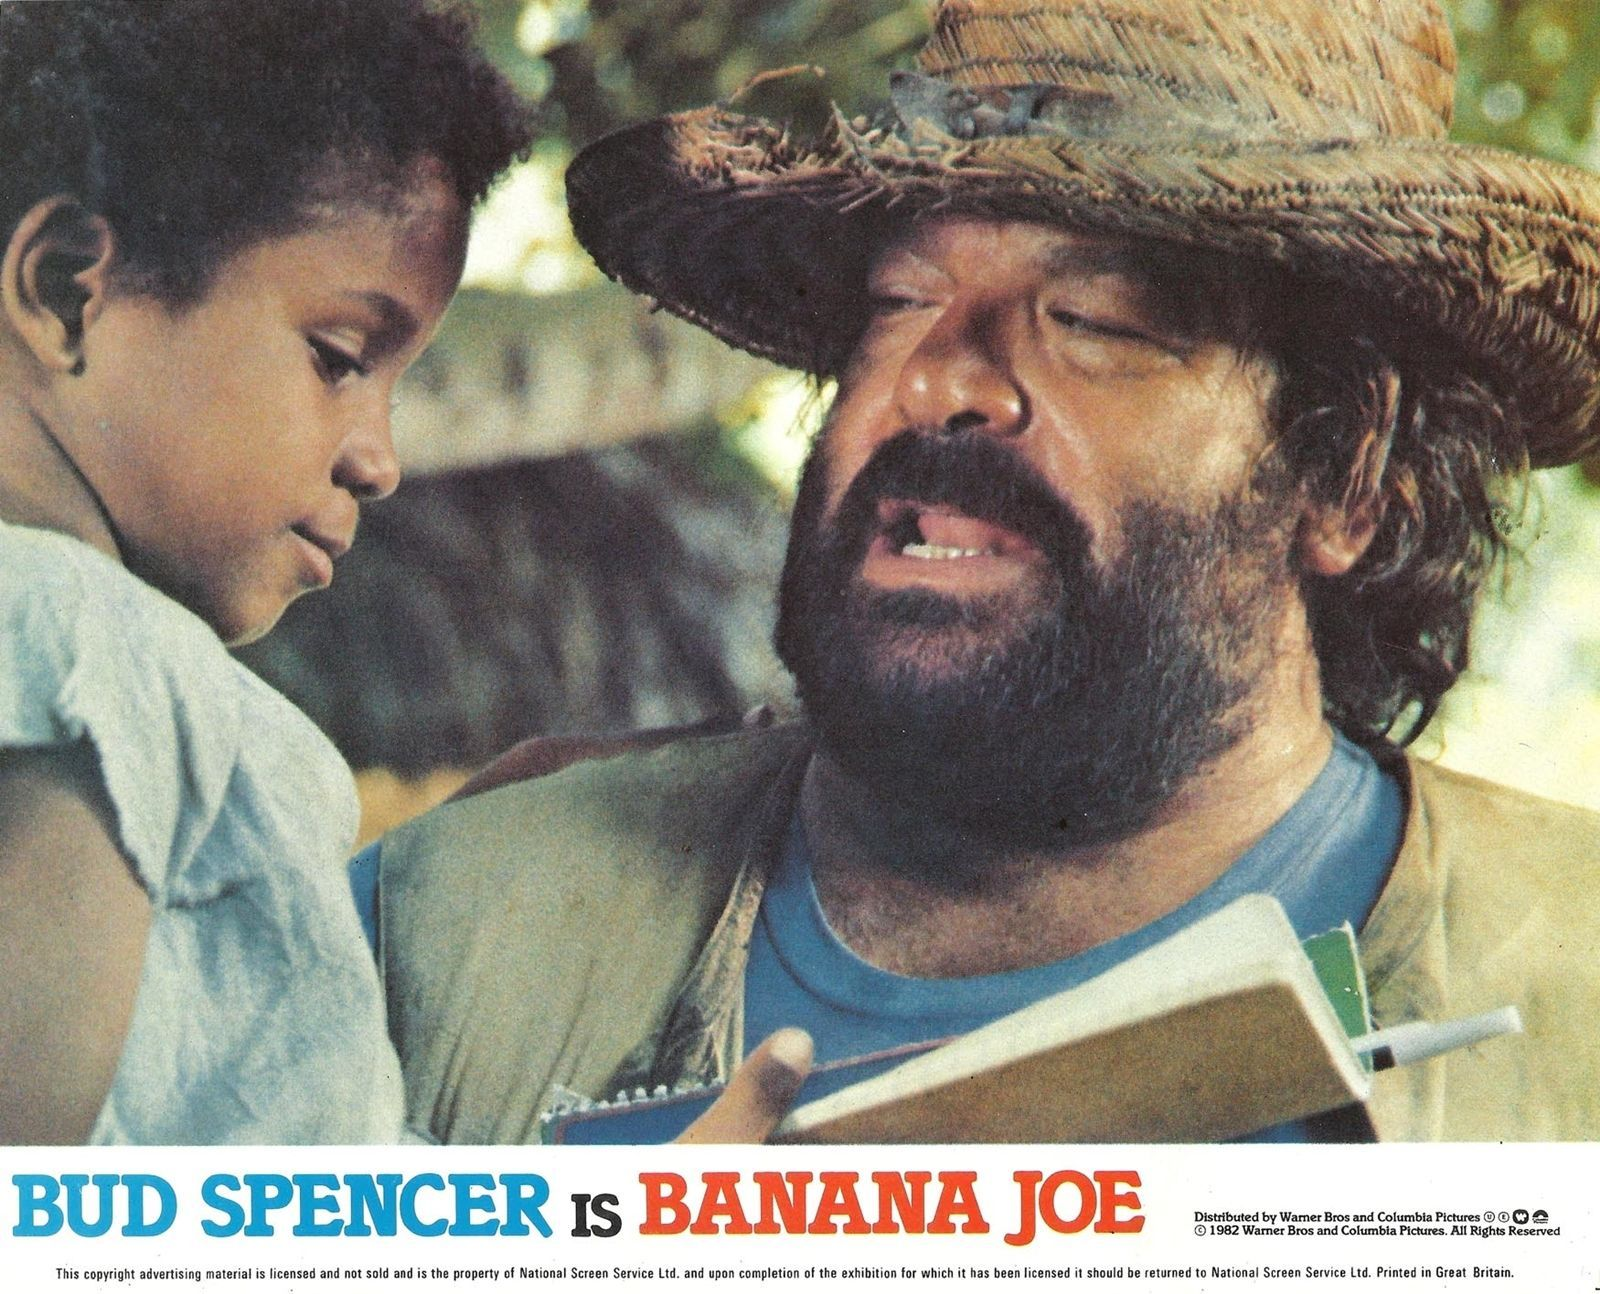 Filmes Bud Spencer E Terence Hill Dublado with regard to bud spencer | bud spencer a terence hill | pinterest | movie